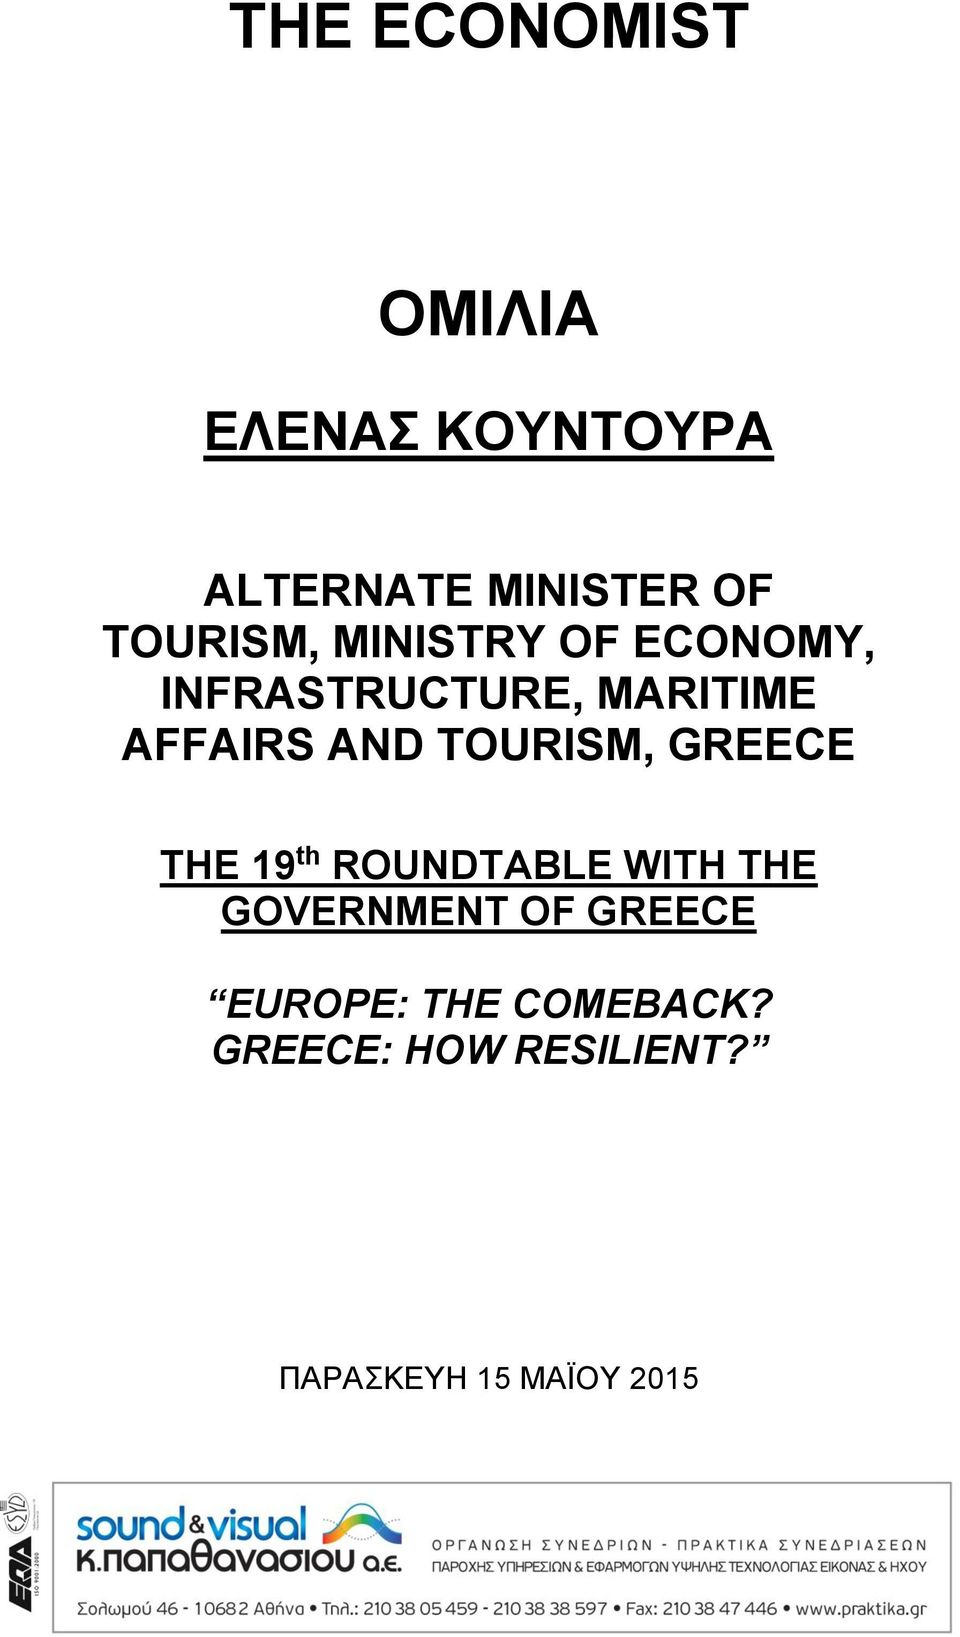 AND TOURISM, GREECE THE 19 th ROUNDTABLE WITH THE GOVERNMENT OF